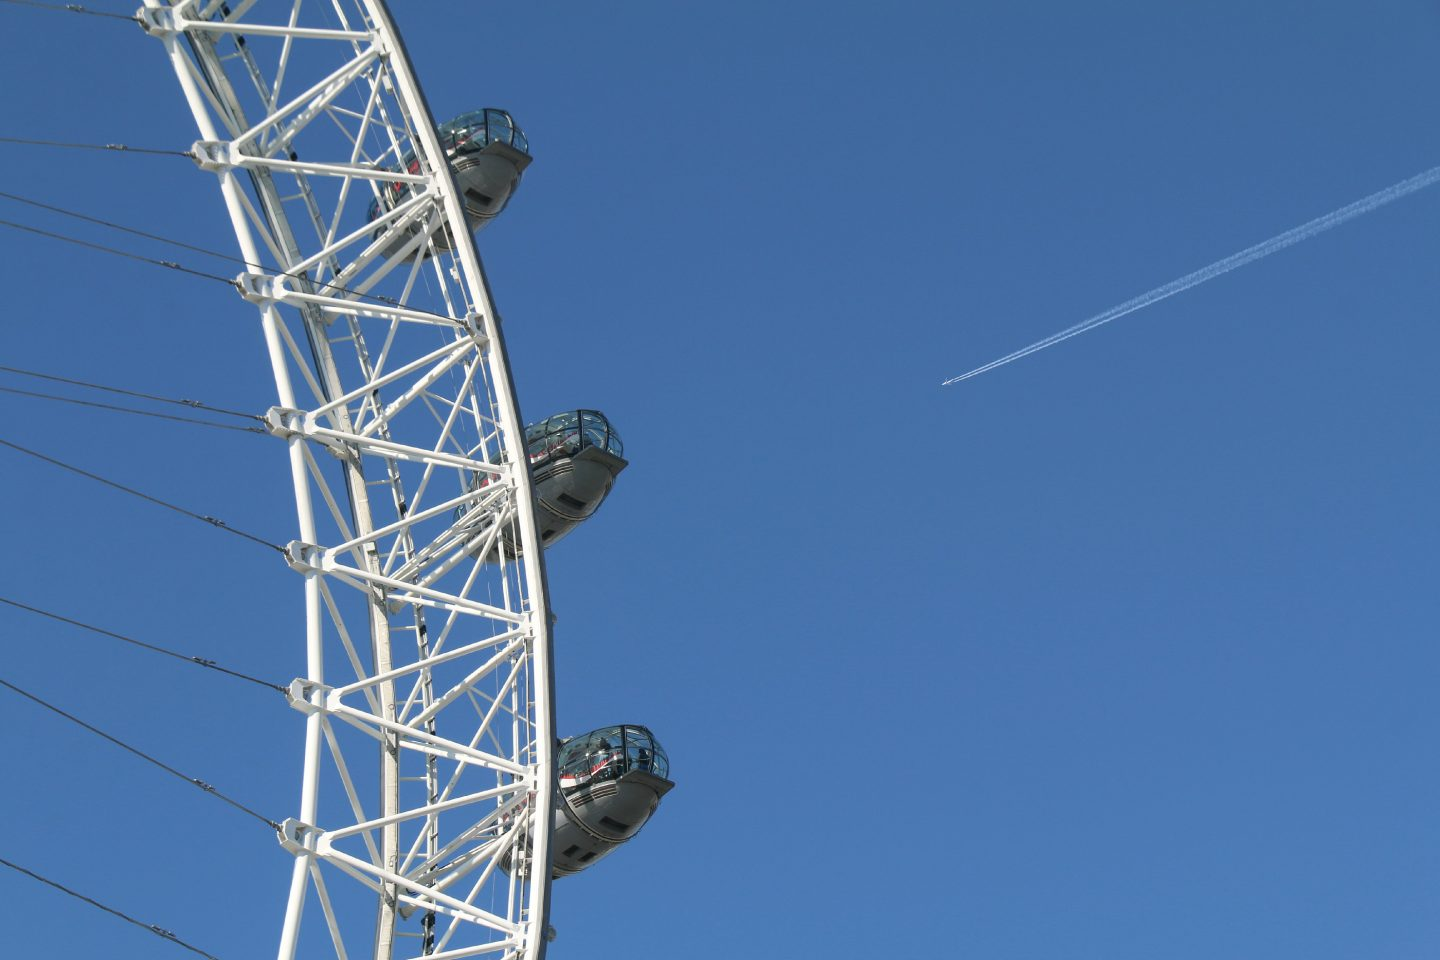 London Eye Blue sky